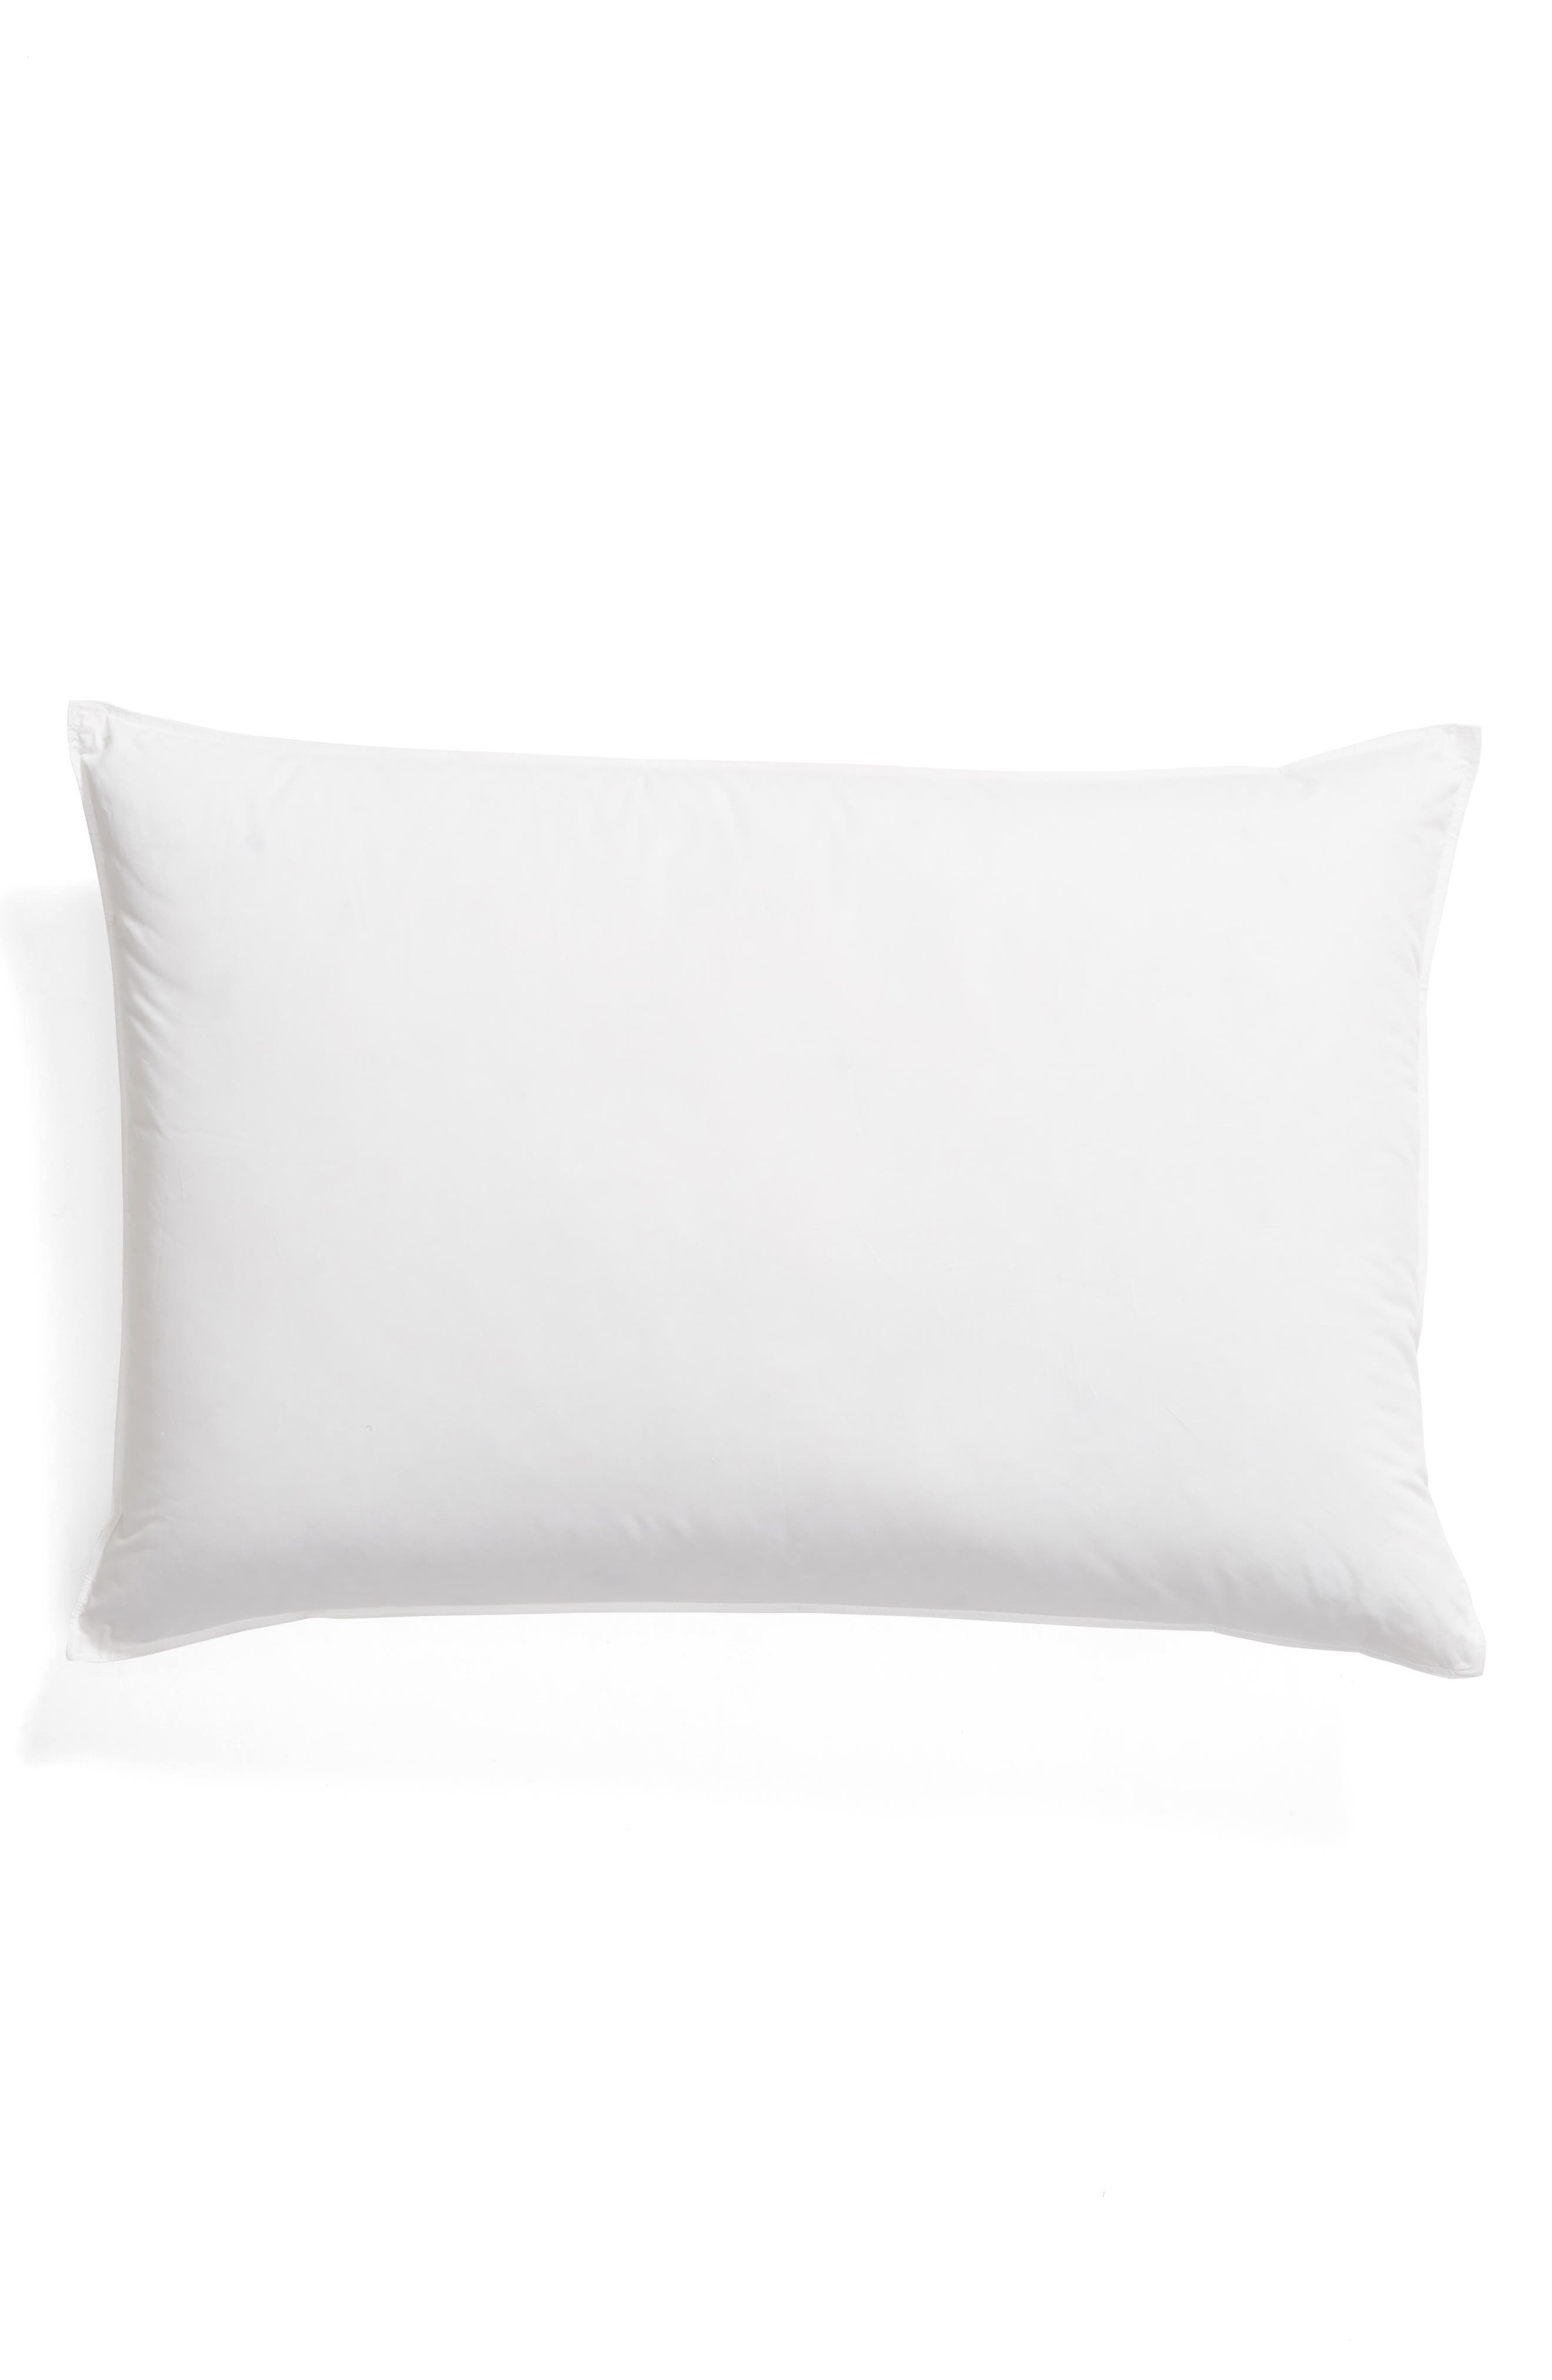 Valletto 650 Fill Power Down & Feather 400 Thread Count Three-Chamber Pillow,                             Main thumbnail 1, color,                             WHITE